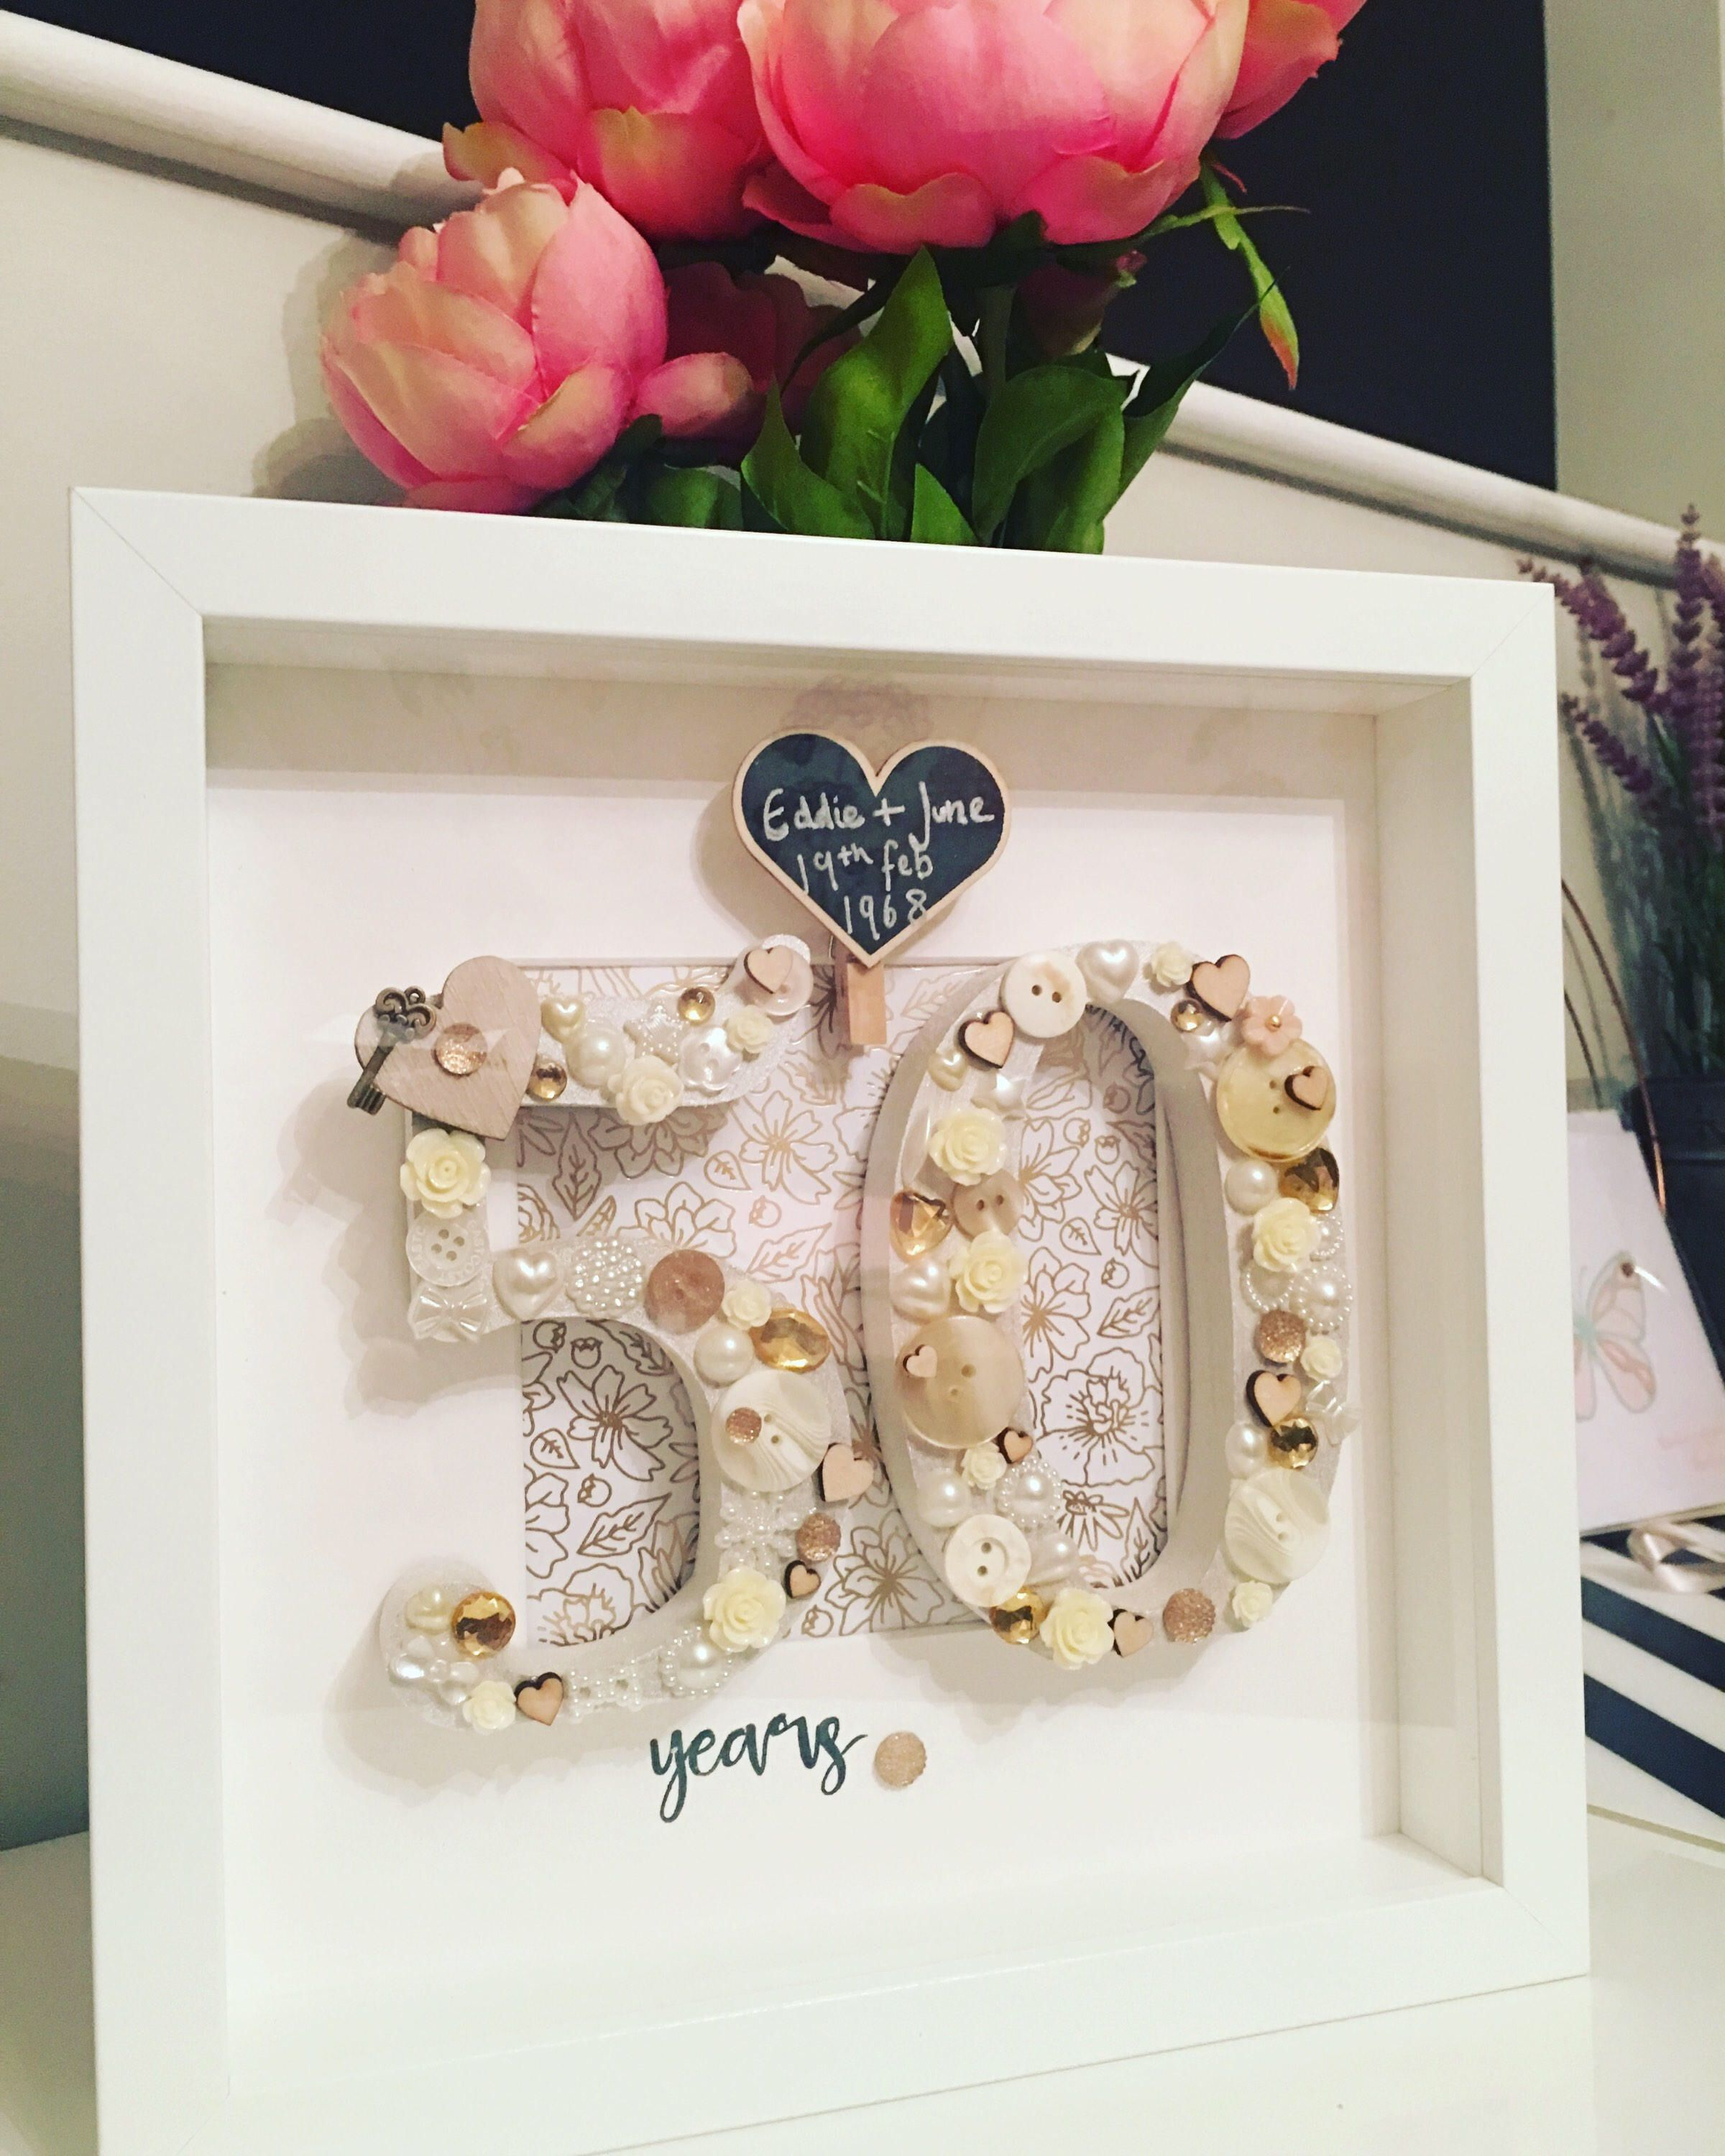 Pin By Donna Trumbower On 50th Wedding Anniversary Pinterest